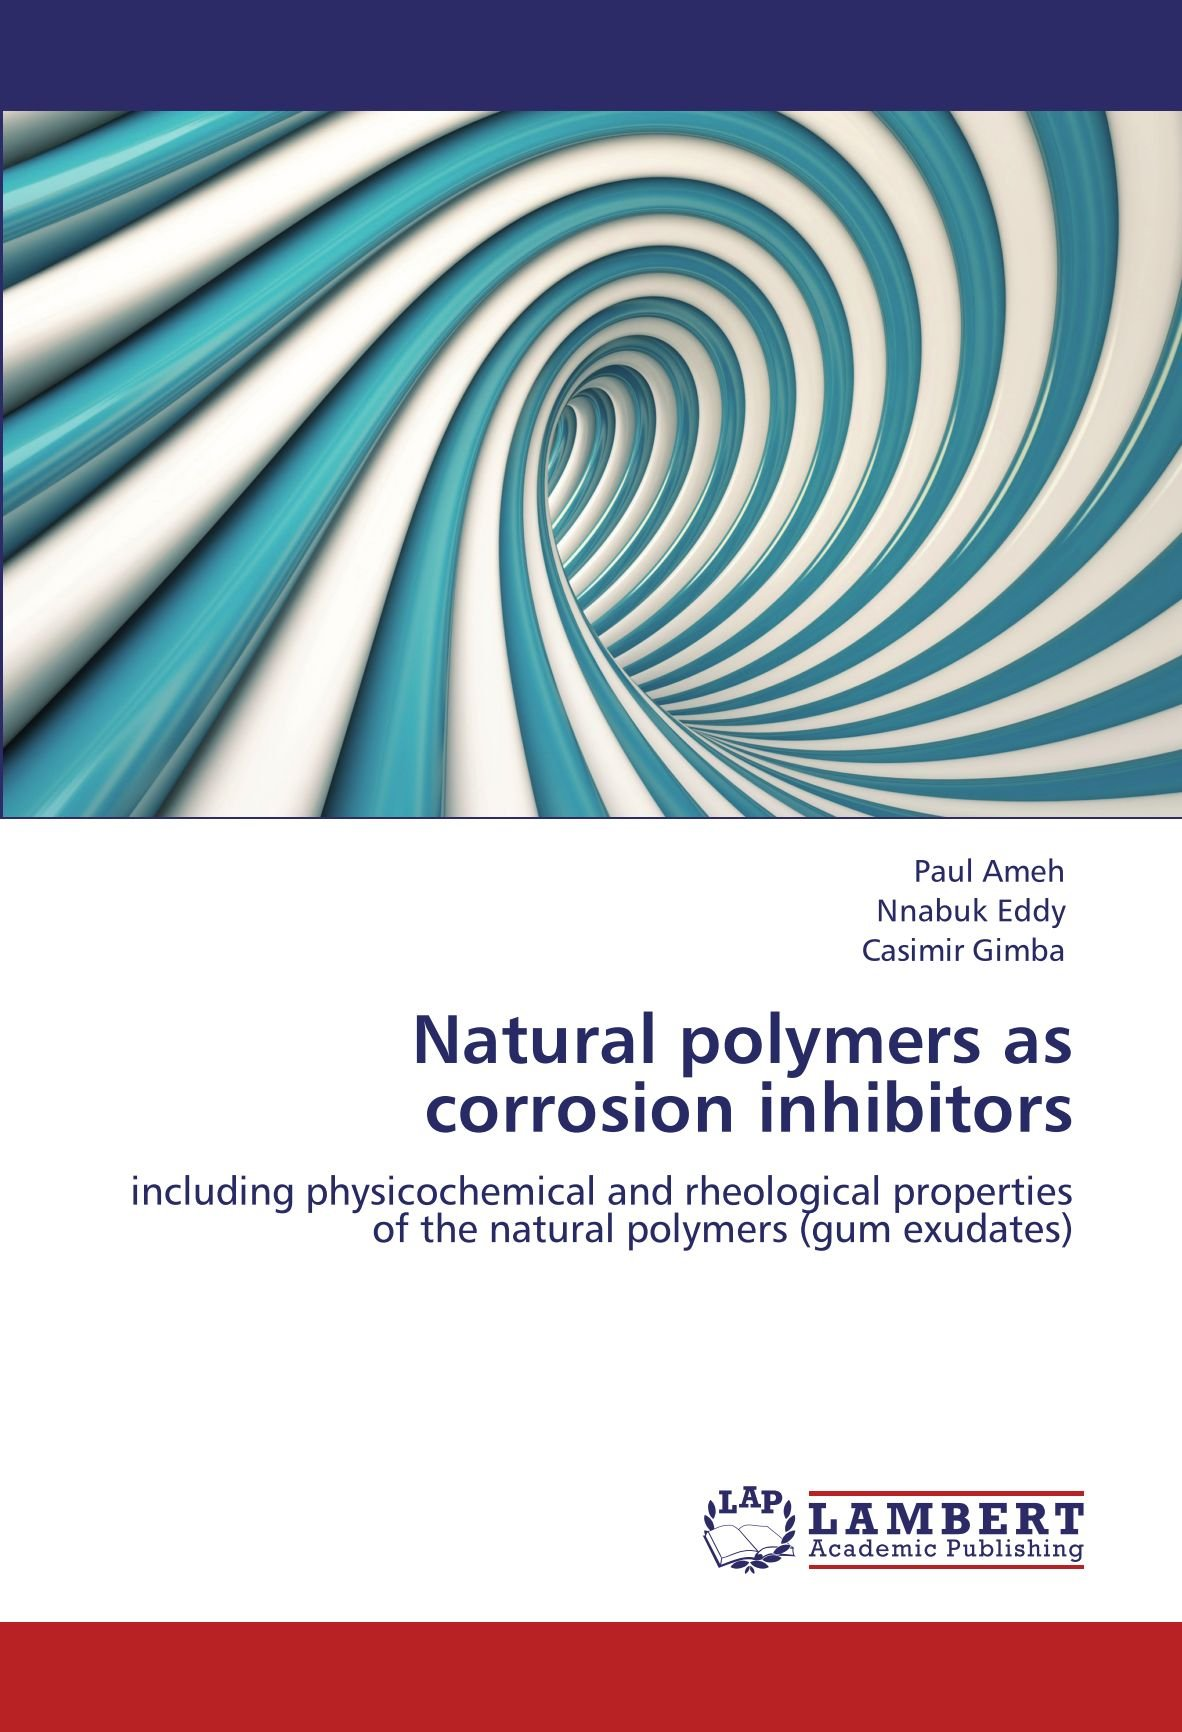 Natural polymers as corrosion inhibitors: including physicochemical and rheological properties of the natural polymers (gum exudates) PDF